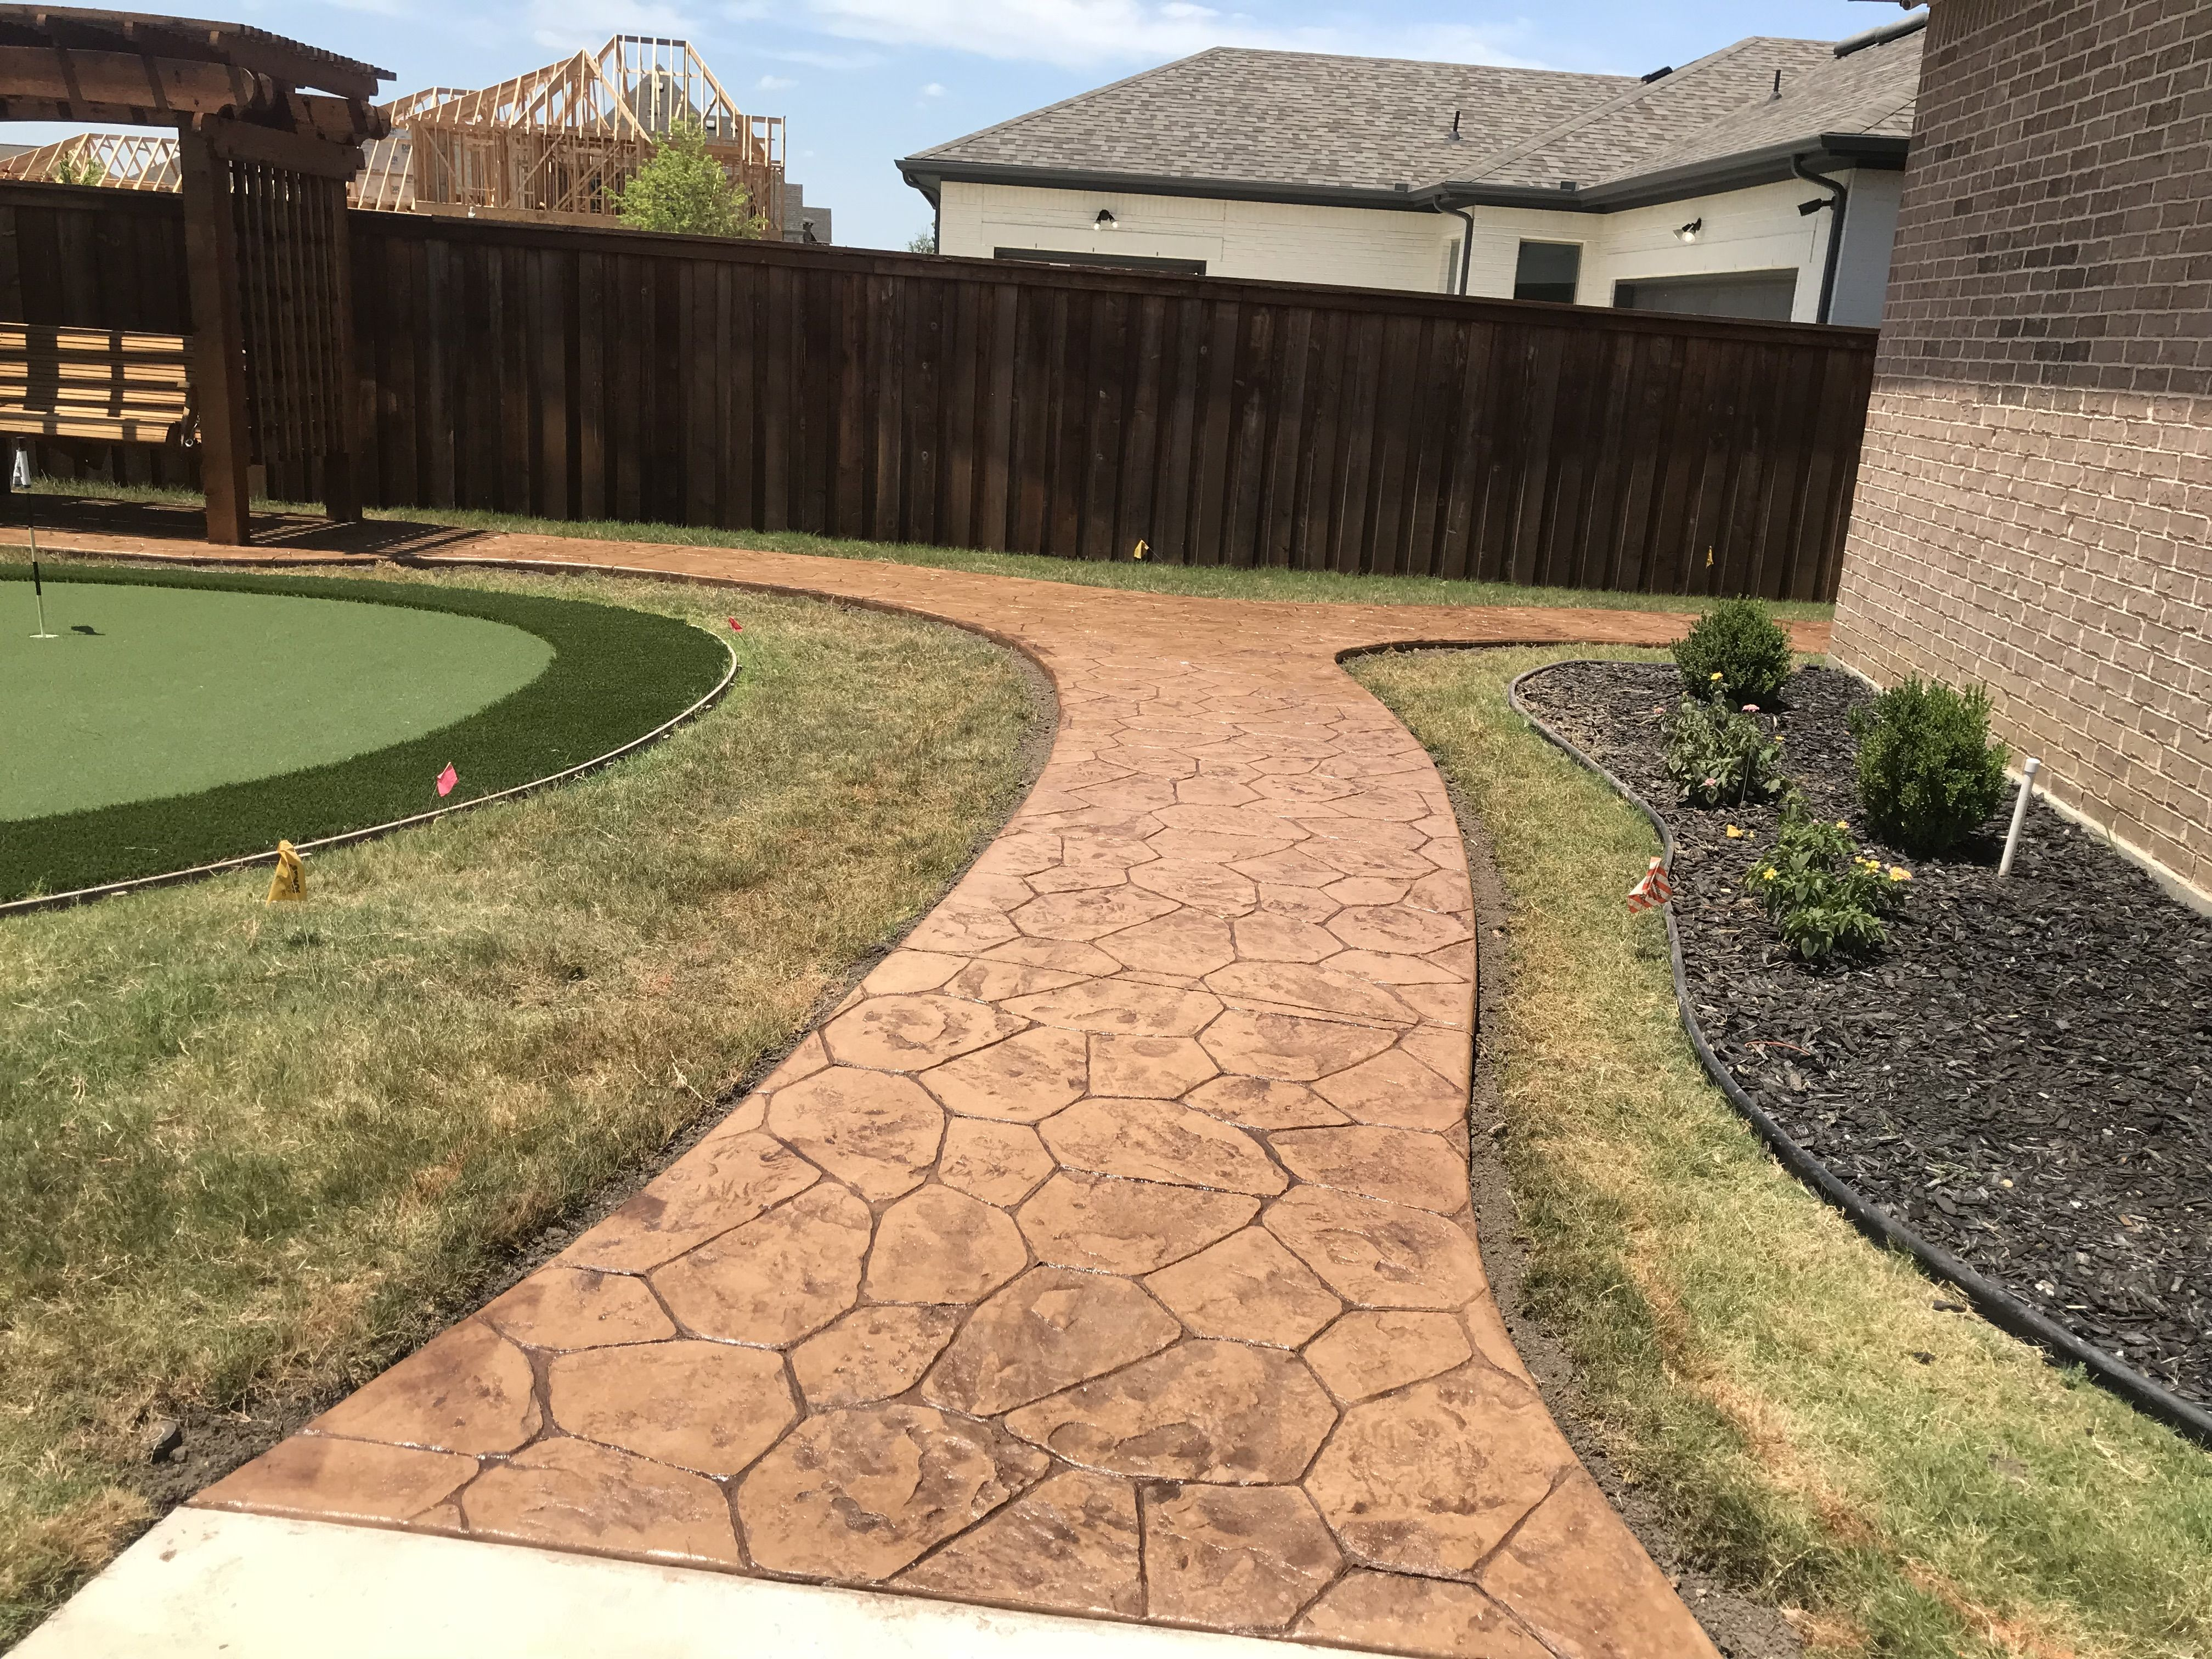 Here Is One More Picture Of The Stamped Concrete Groundscape